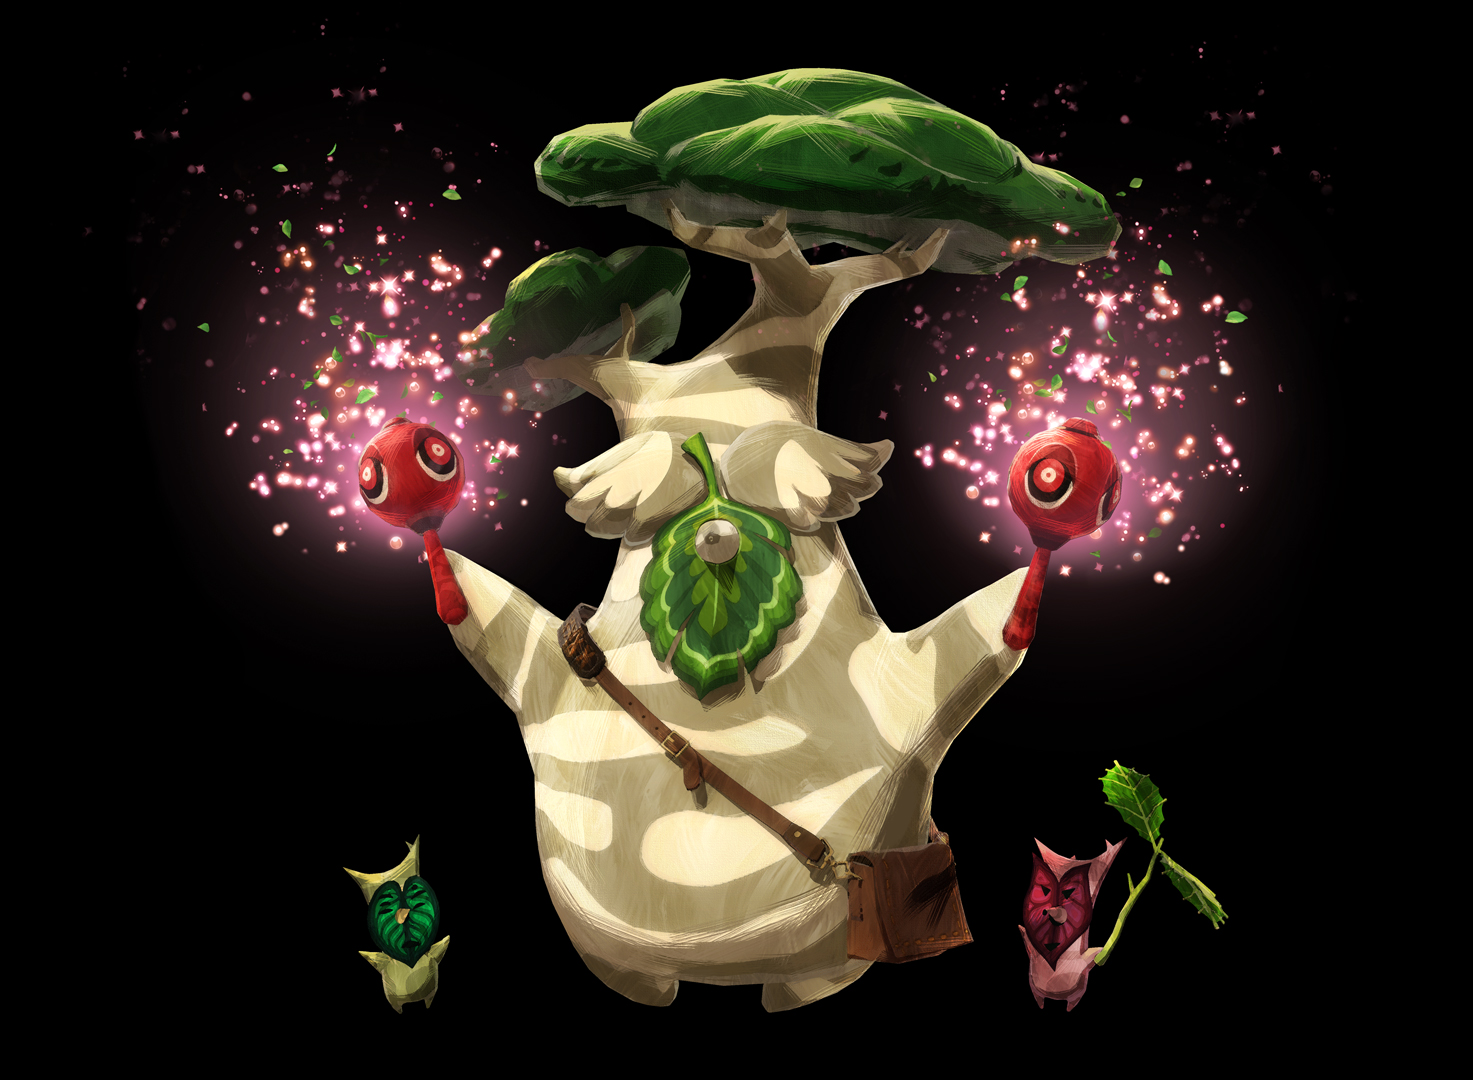 Nintendo Of America On Twitter Shalaka The Musician Of Korok Forest Who Loves To Dance Hestu Returns In Hyrulewarriors Age Of Calamity Zelda Https T Co 4udgtpprmg